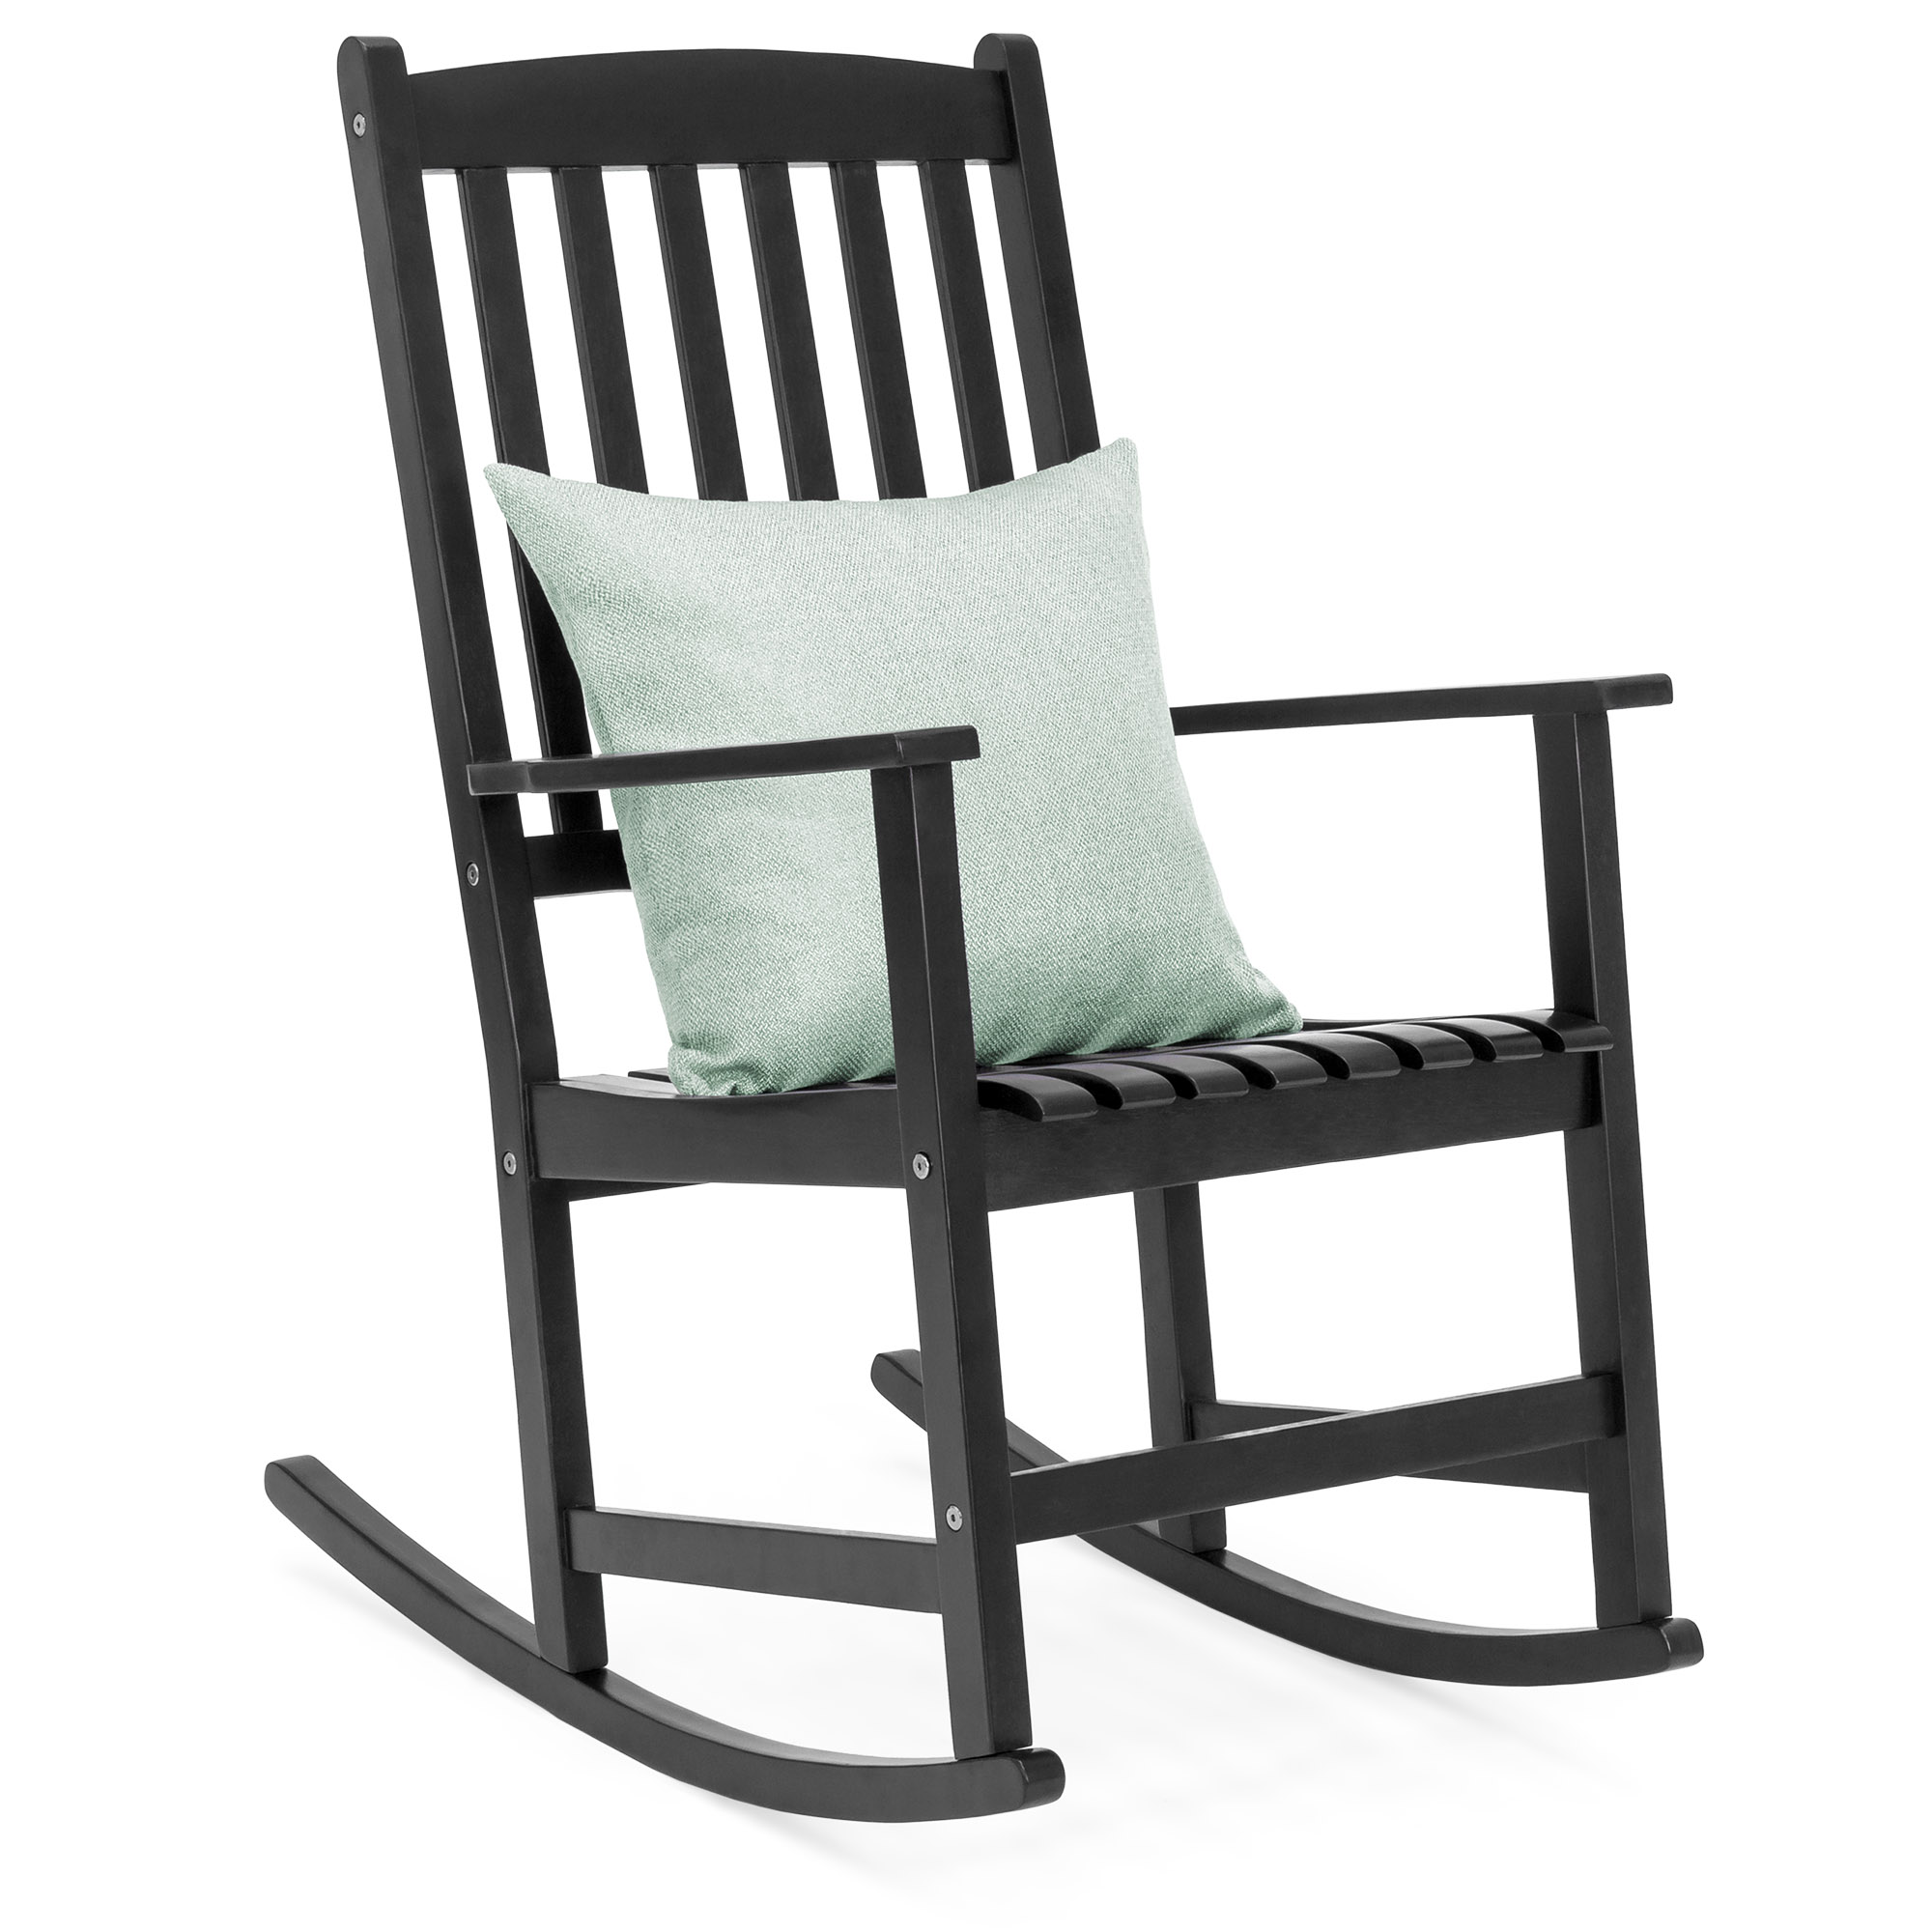 Best Choice Products Indoor Outdoor Traditional Slat Wood Rocking Chair Furniture for Patio, Porch, Living Room - Black